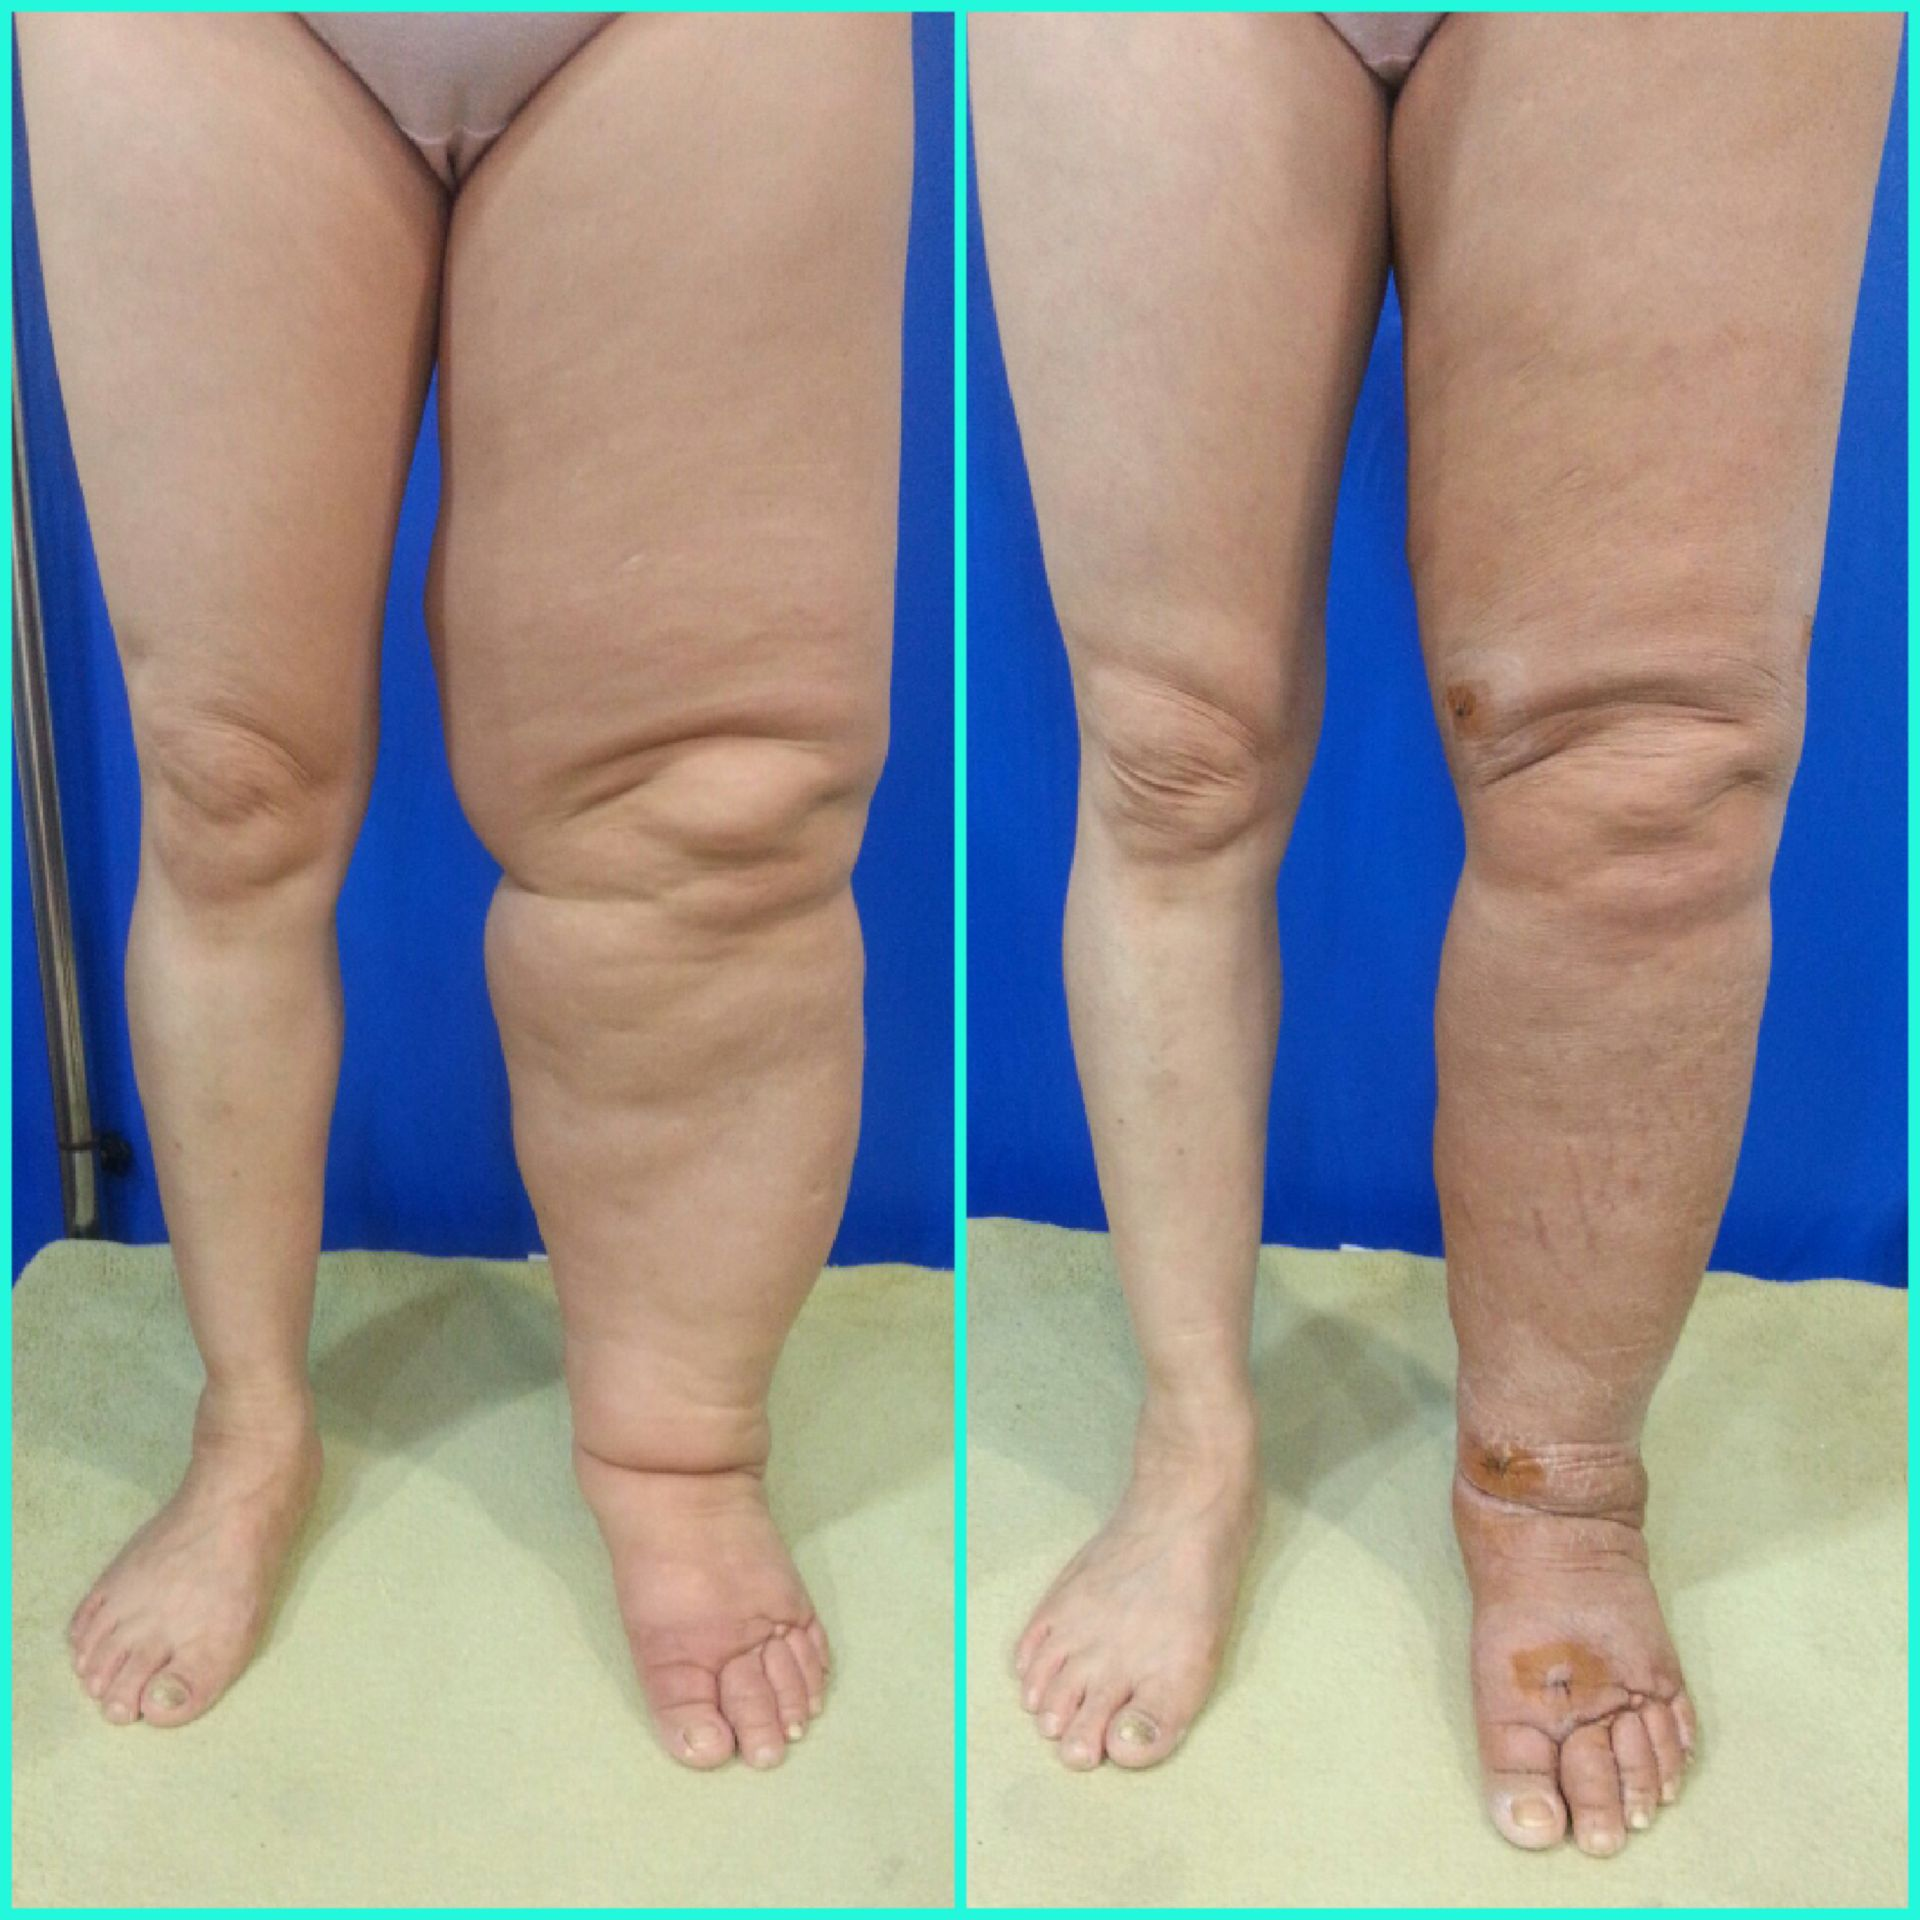 Lymphedema left leg Jung S J( Yonsei S Hospital) 2